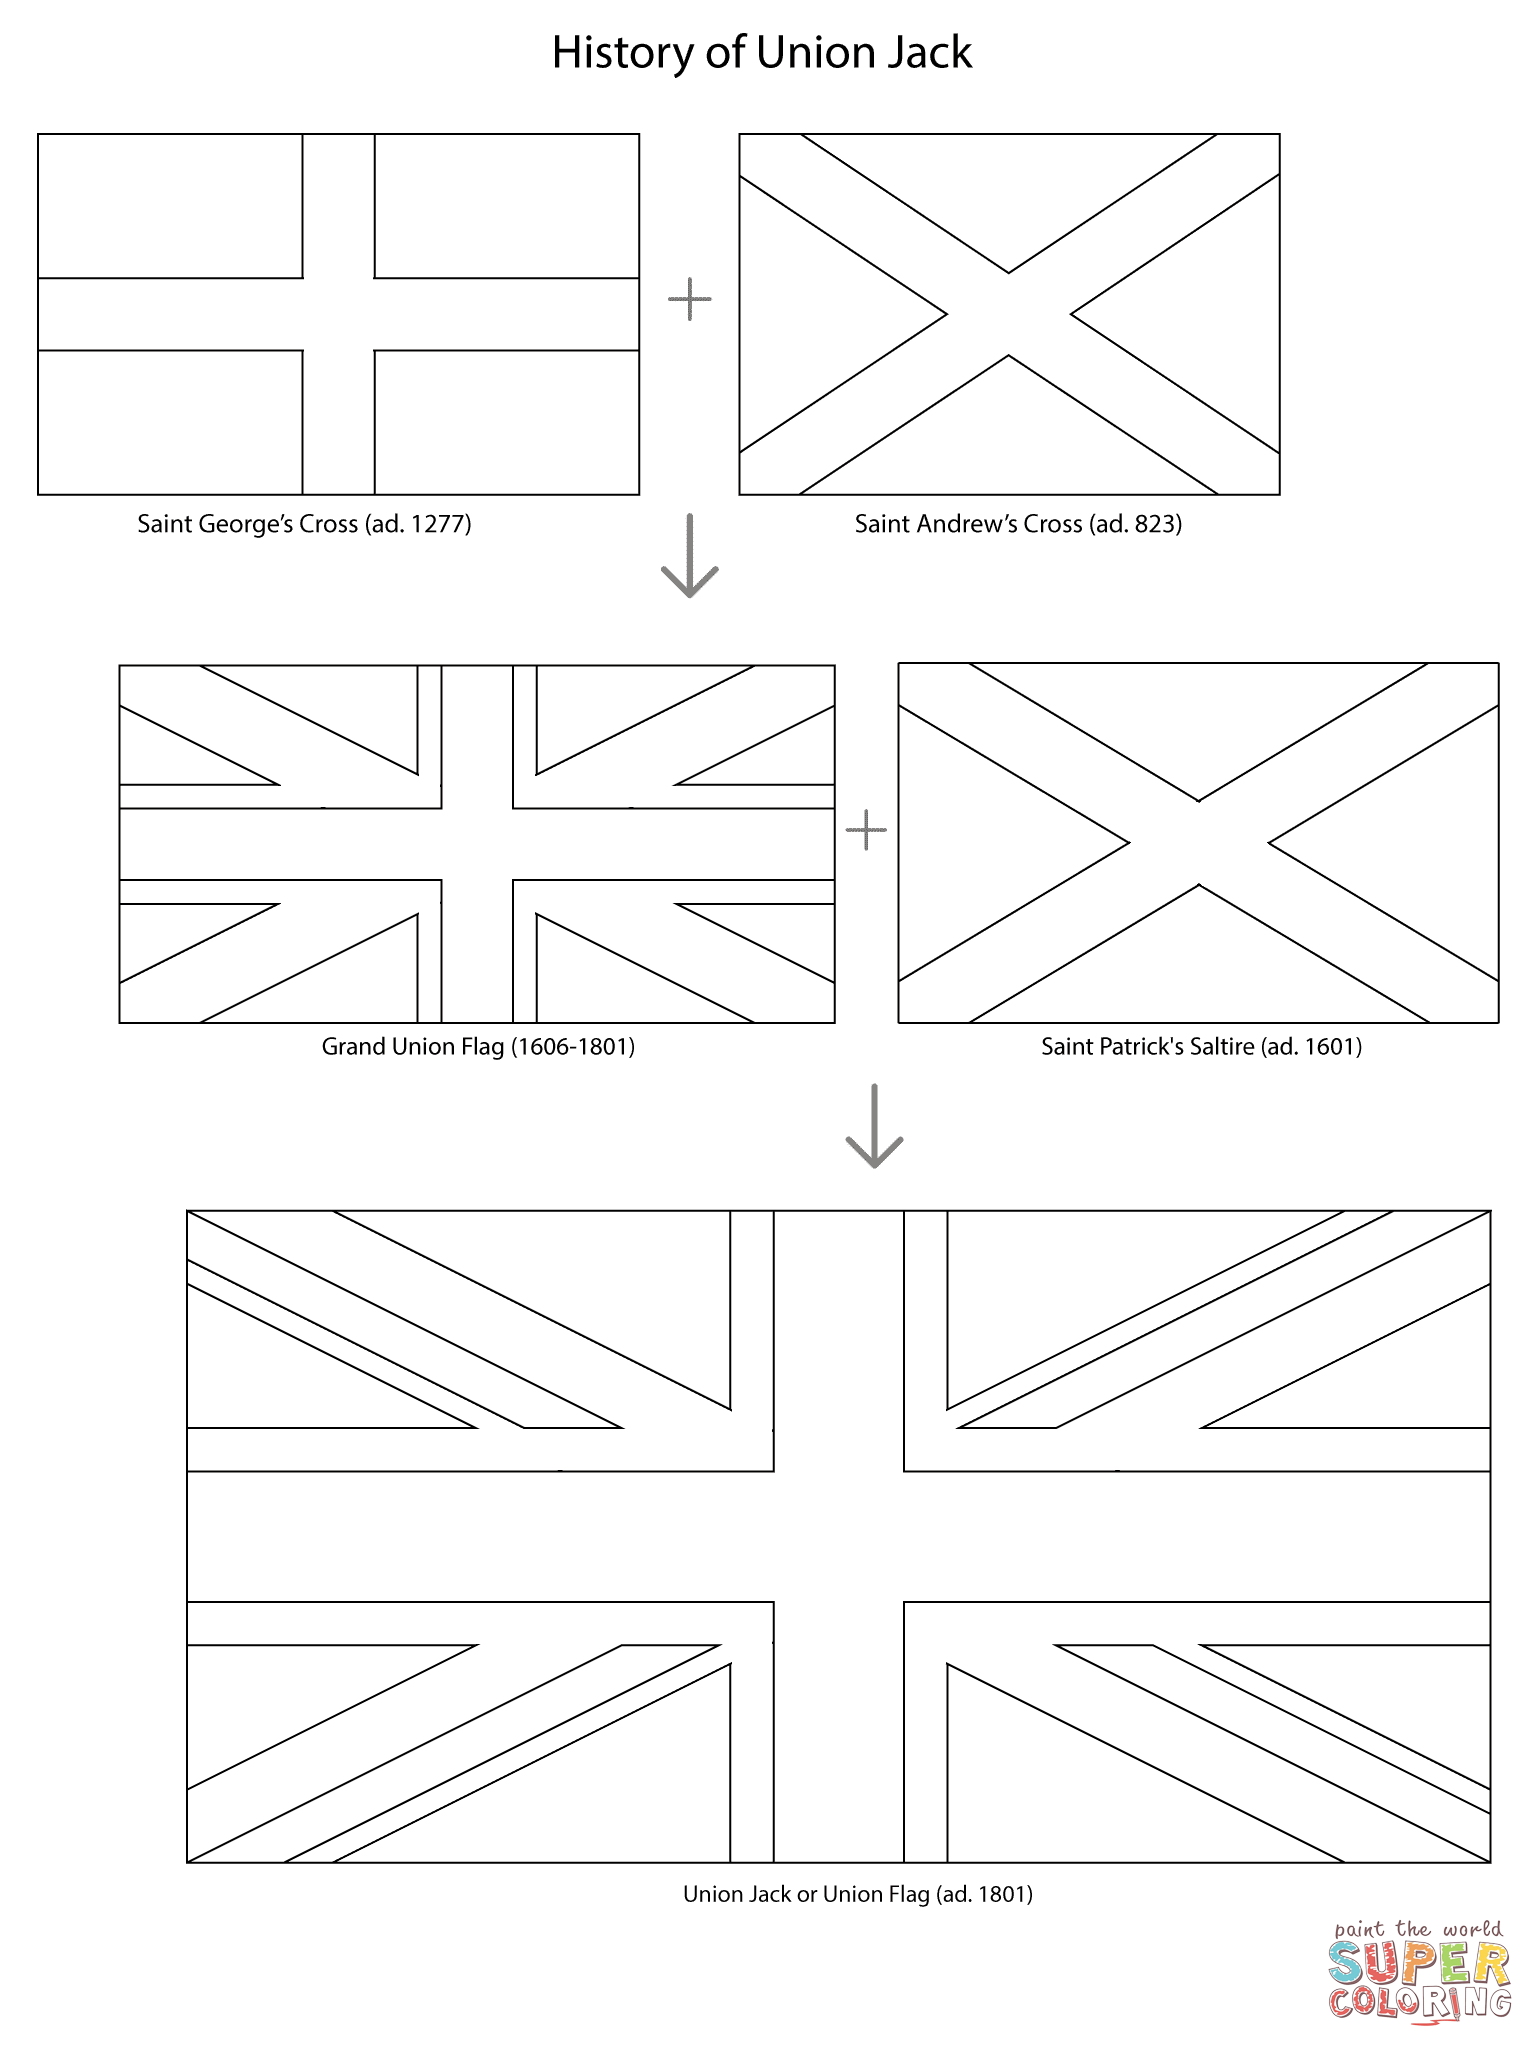 colouring pictures of the union jack flag union jack colouring page coloring pages union jack cards flag of jack union colouring pictures the